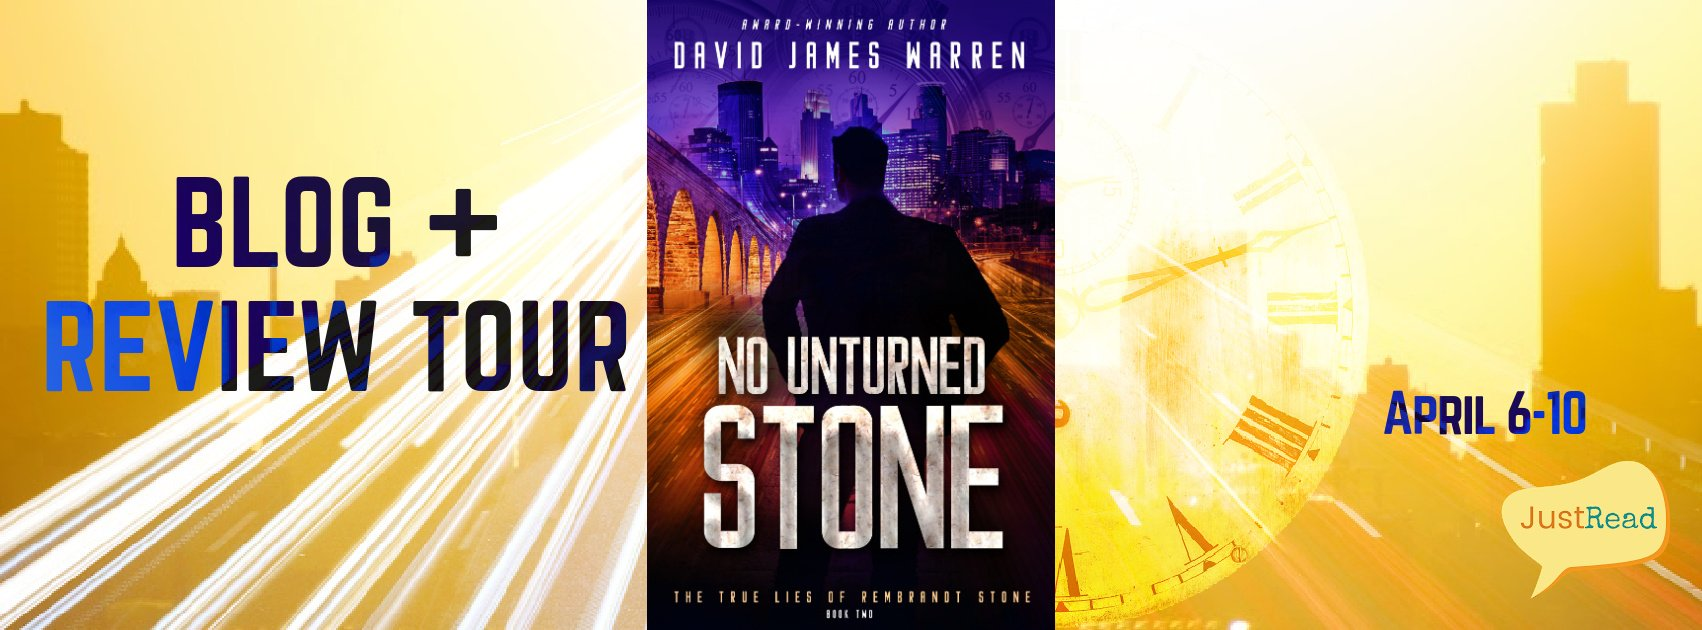 No Unturned Stone Blog Tour: Author Interview + Giveaway